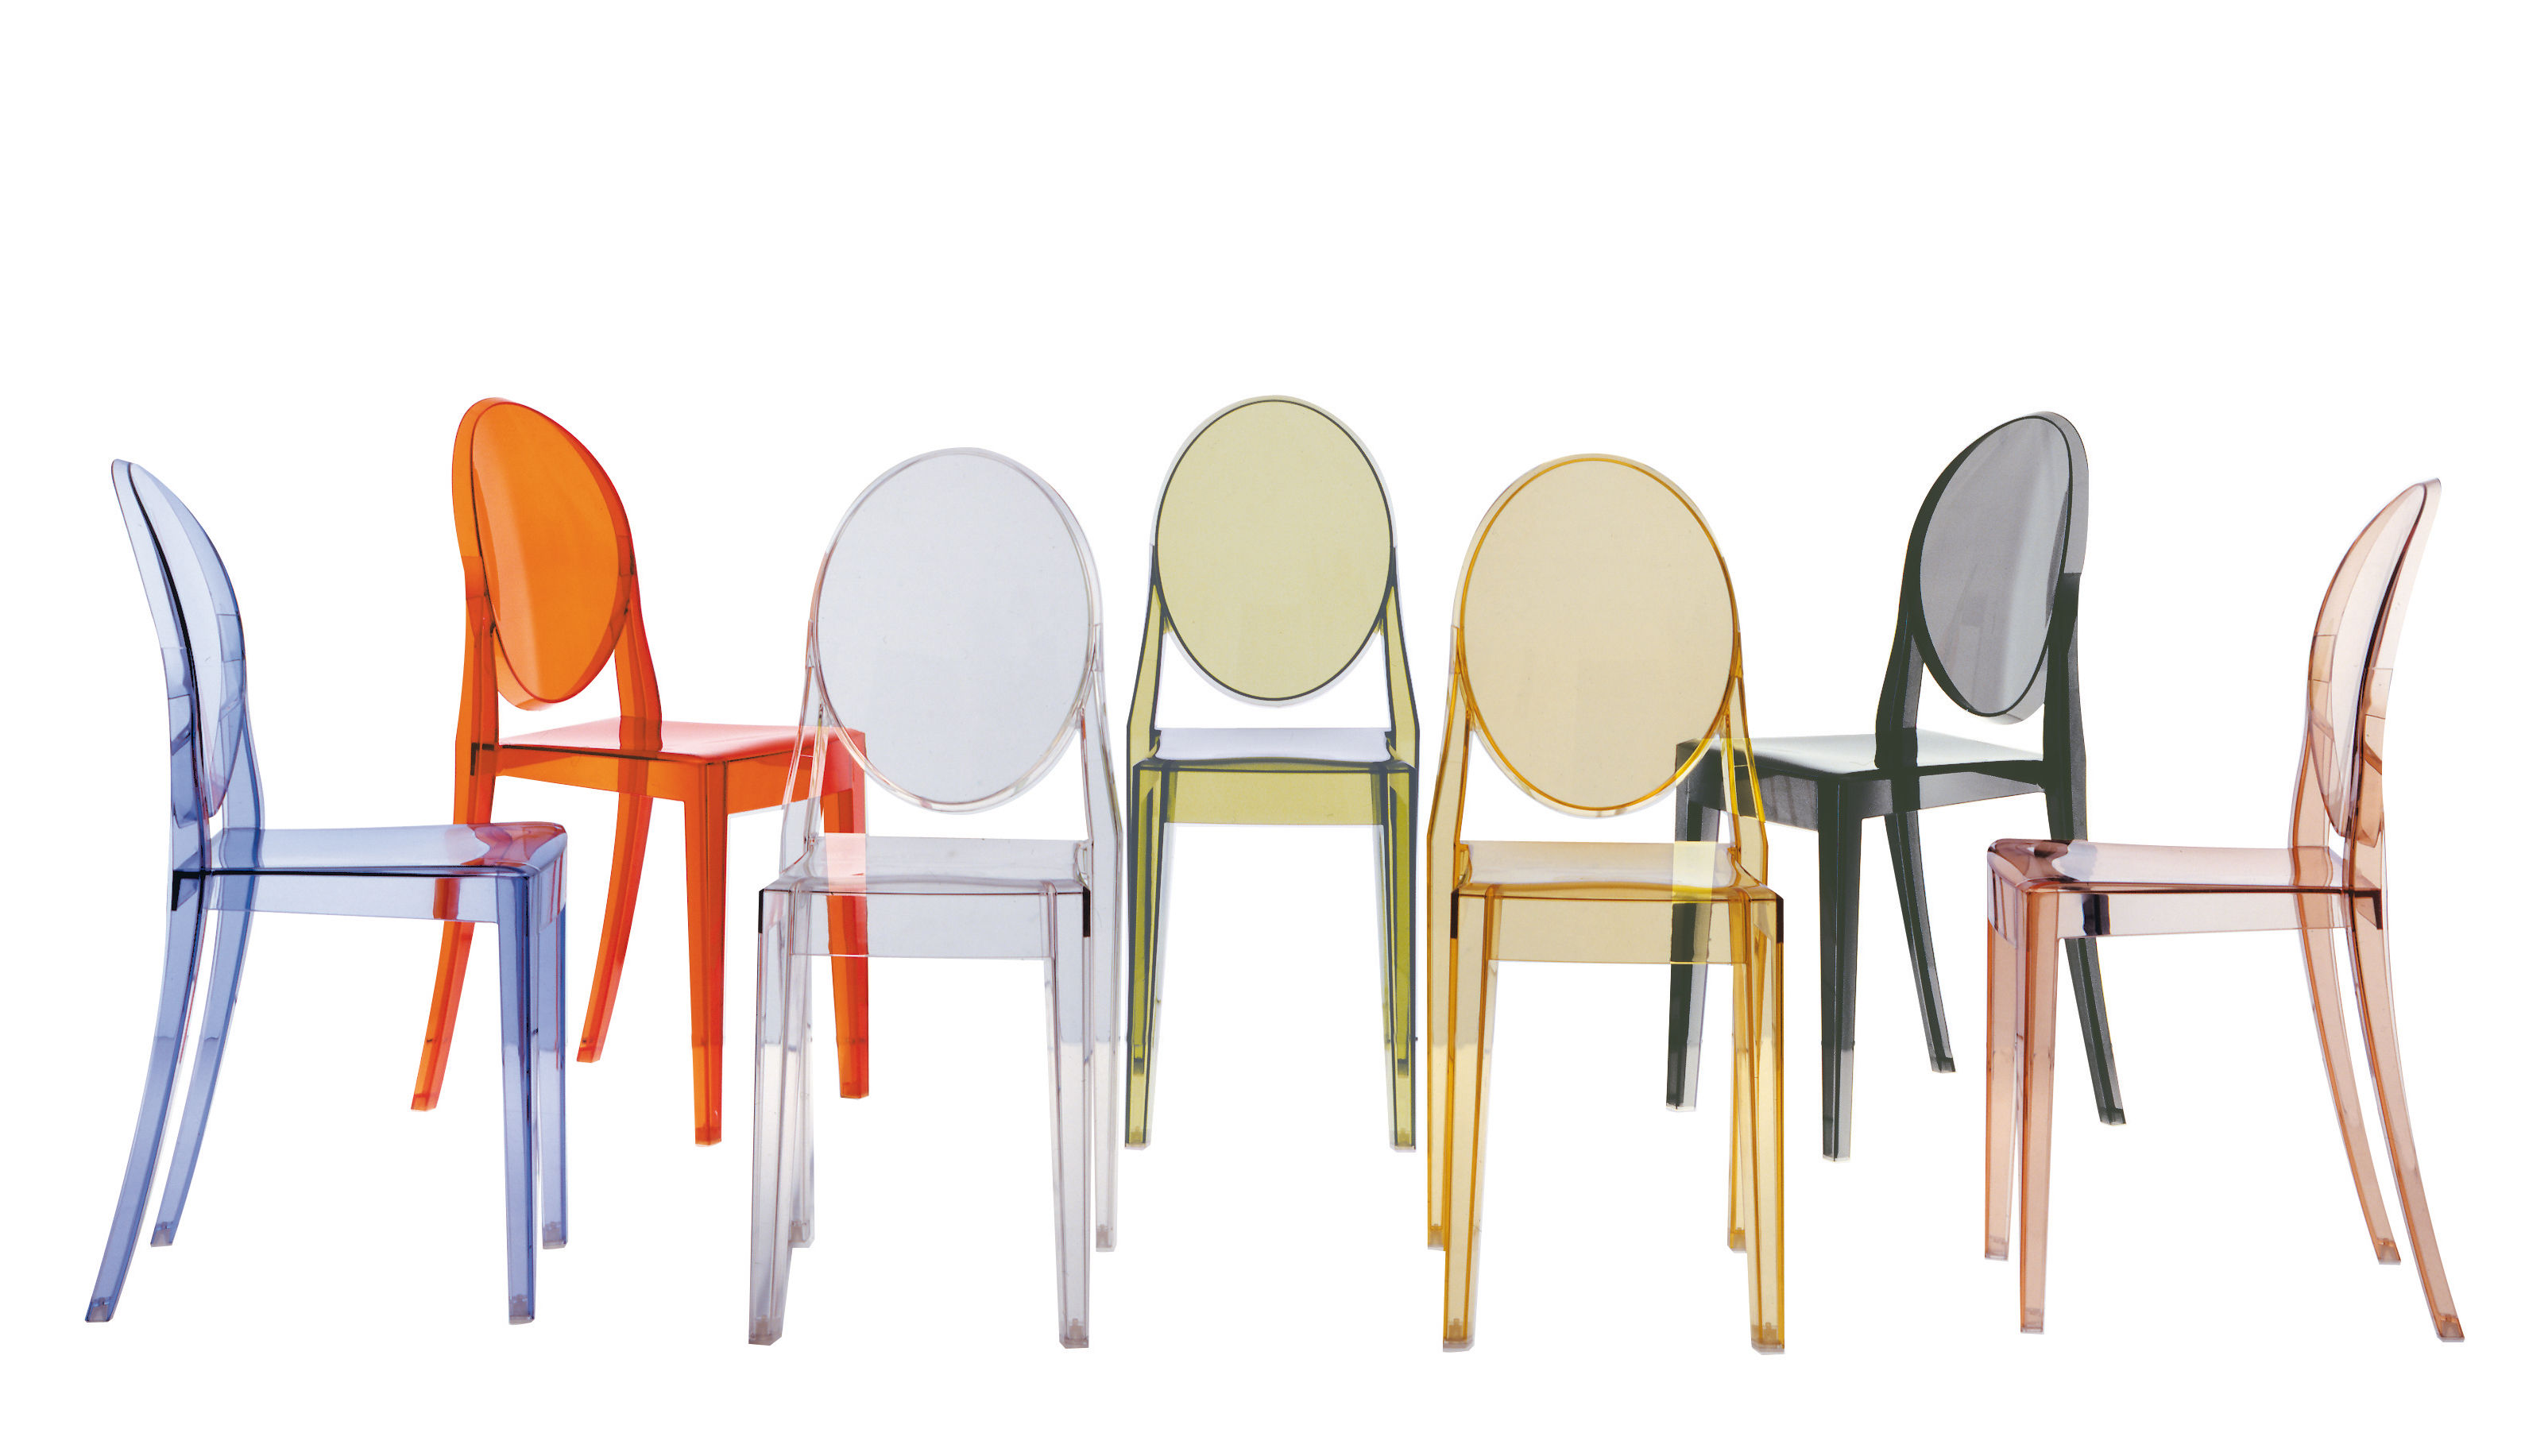 Chaises Design Transparentes Chaise Empilable Victoria Ghost Transparente Polycarbonate Kartell